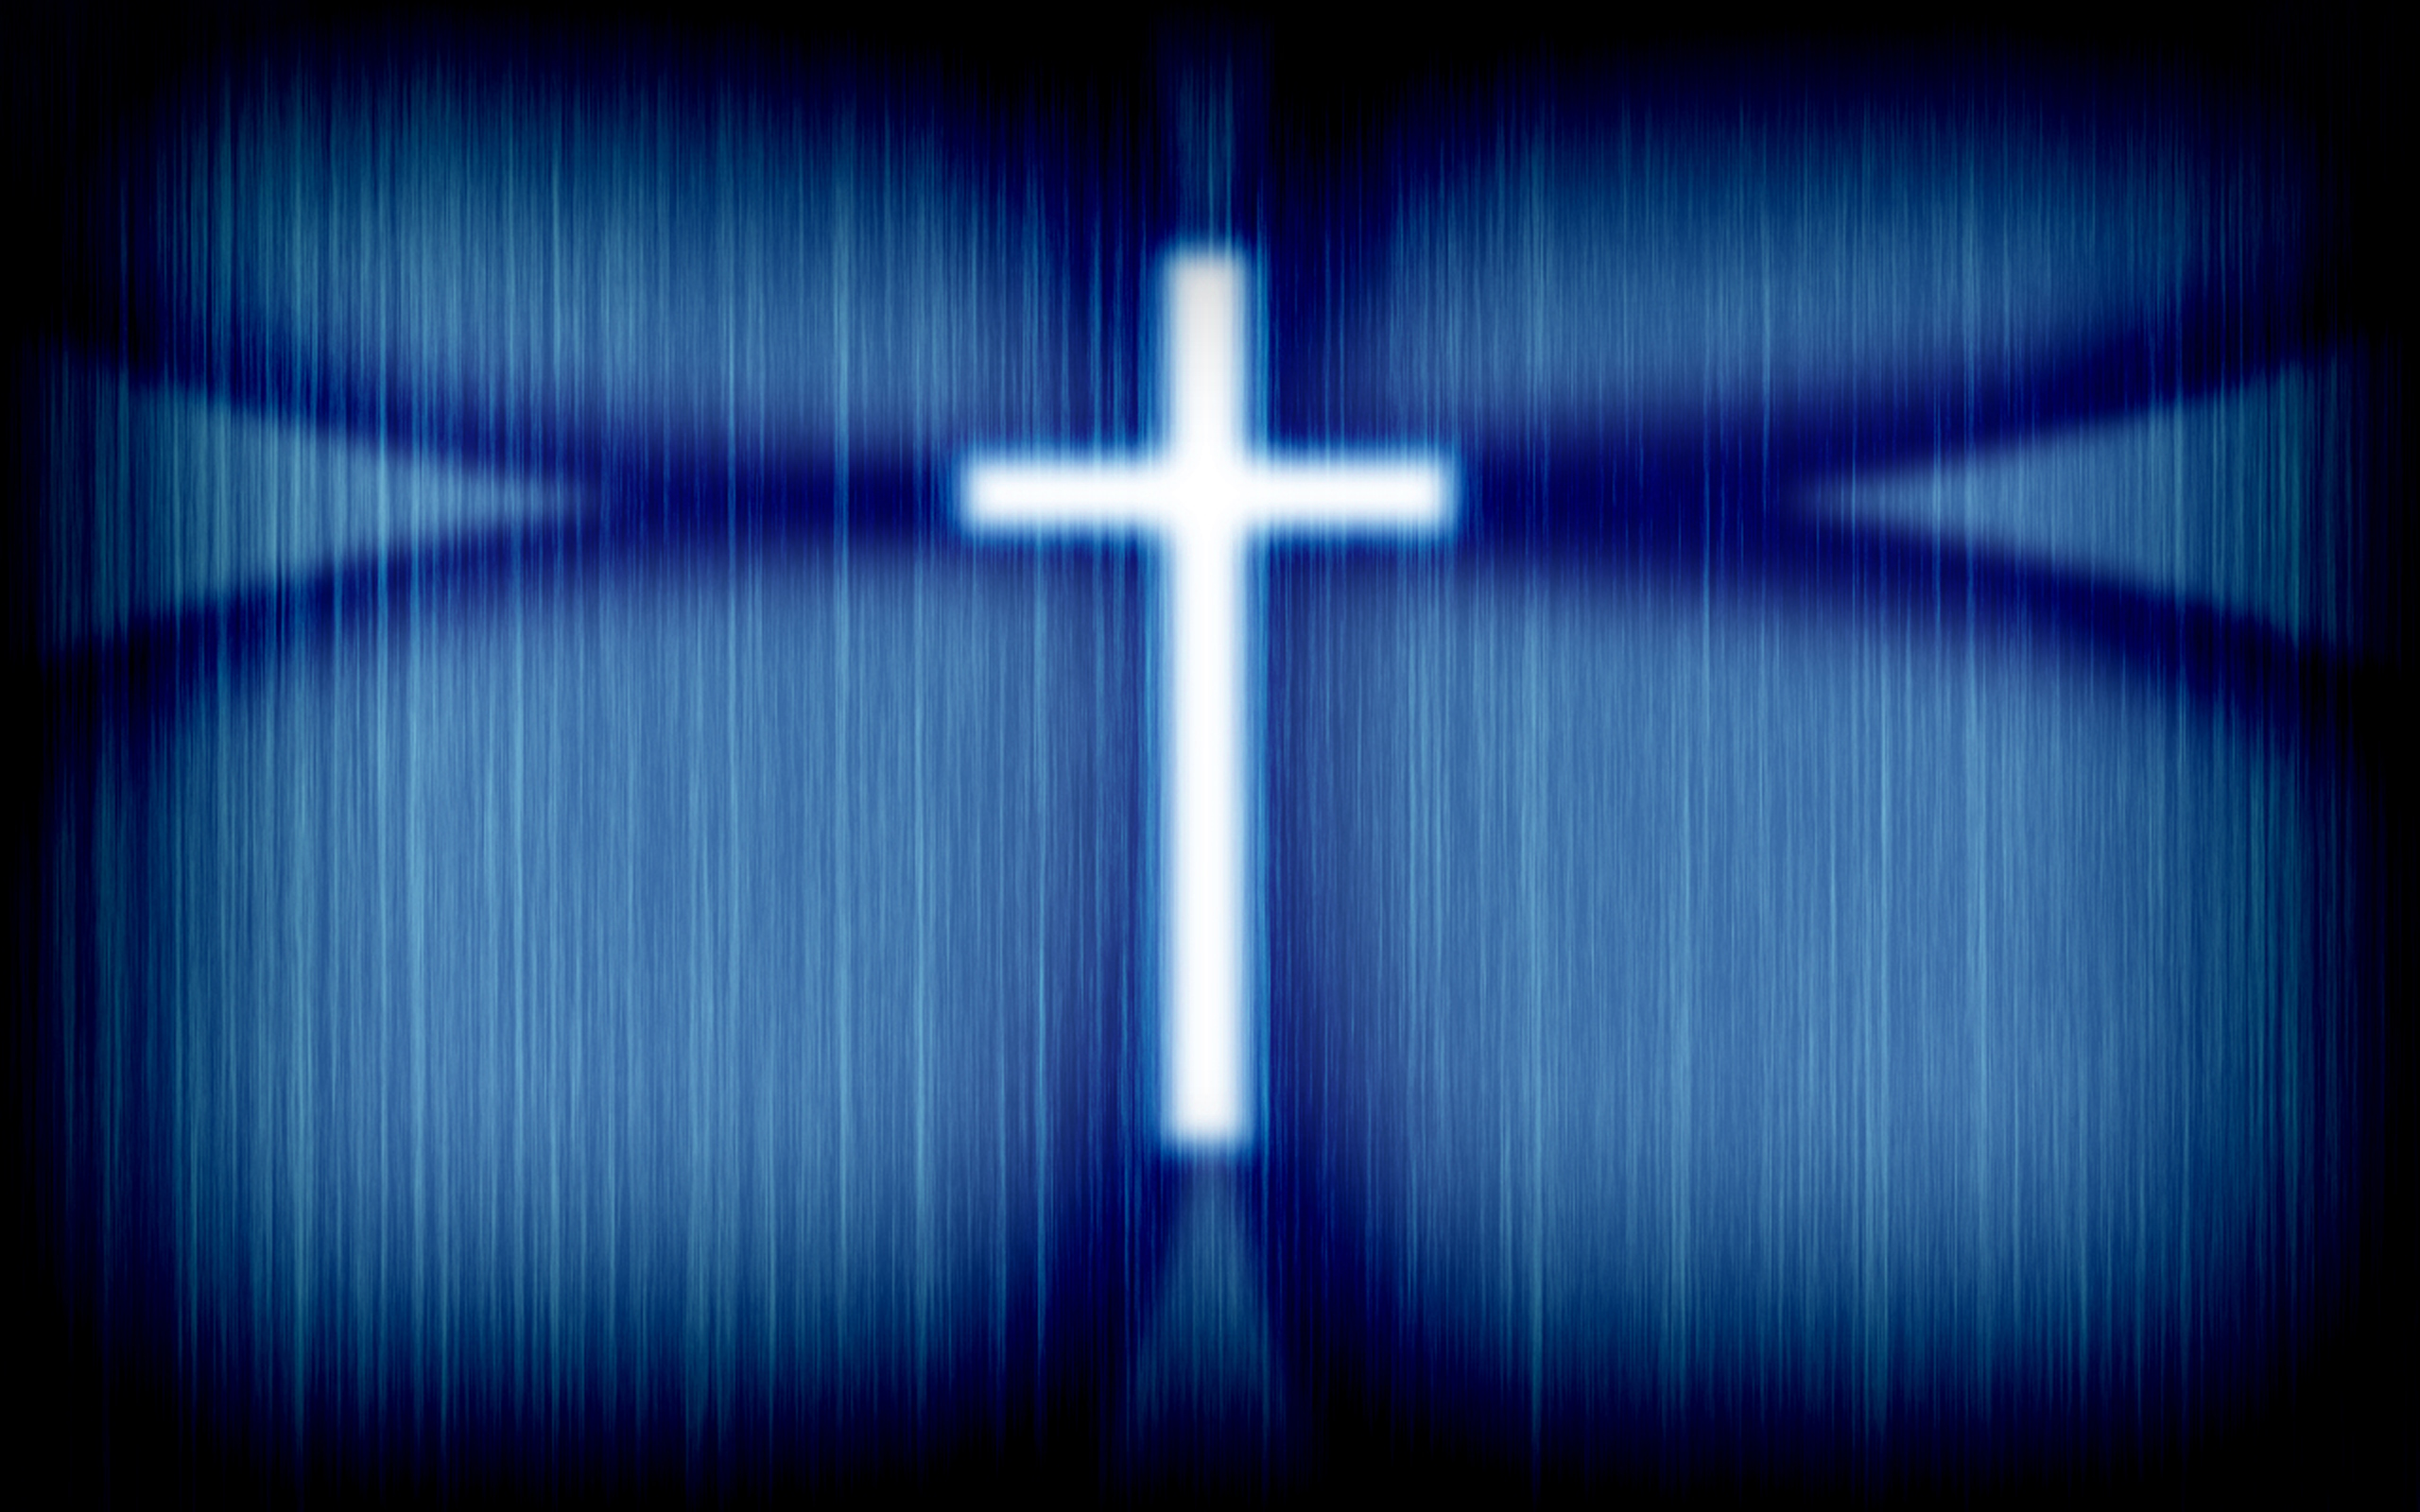 Shining Cross wallpapers and images   wallpapers pictures photos 2560x1600